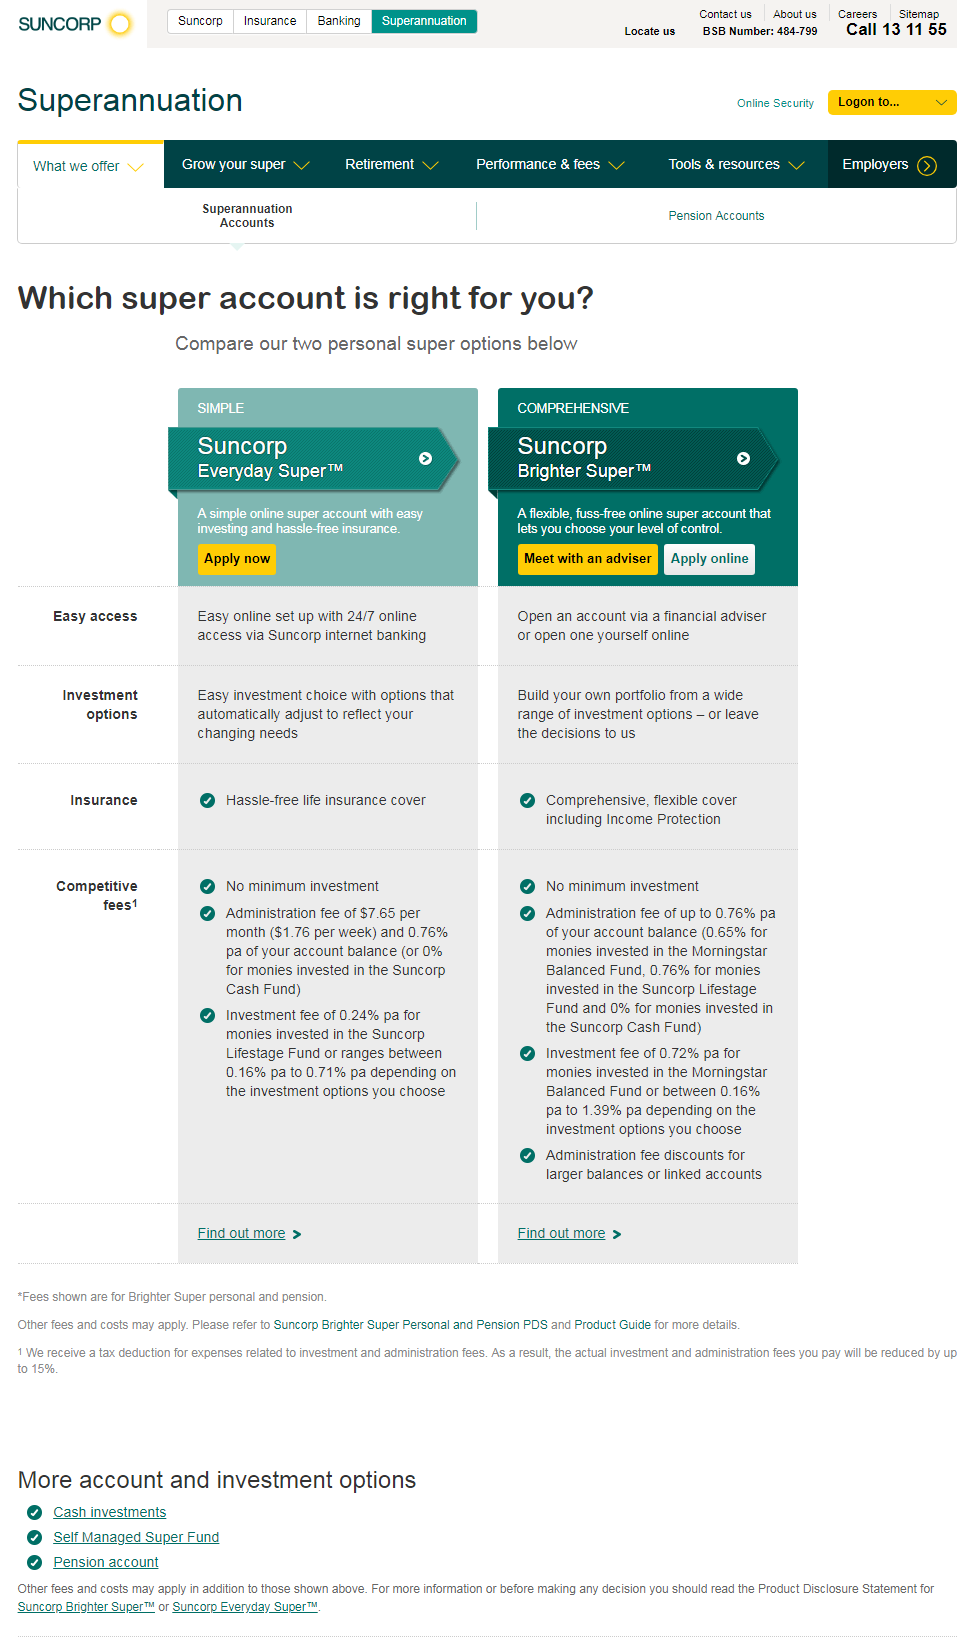 Sales pages for Suncorp Superannuation